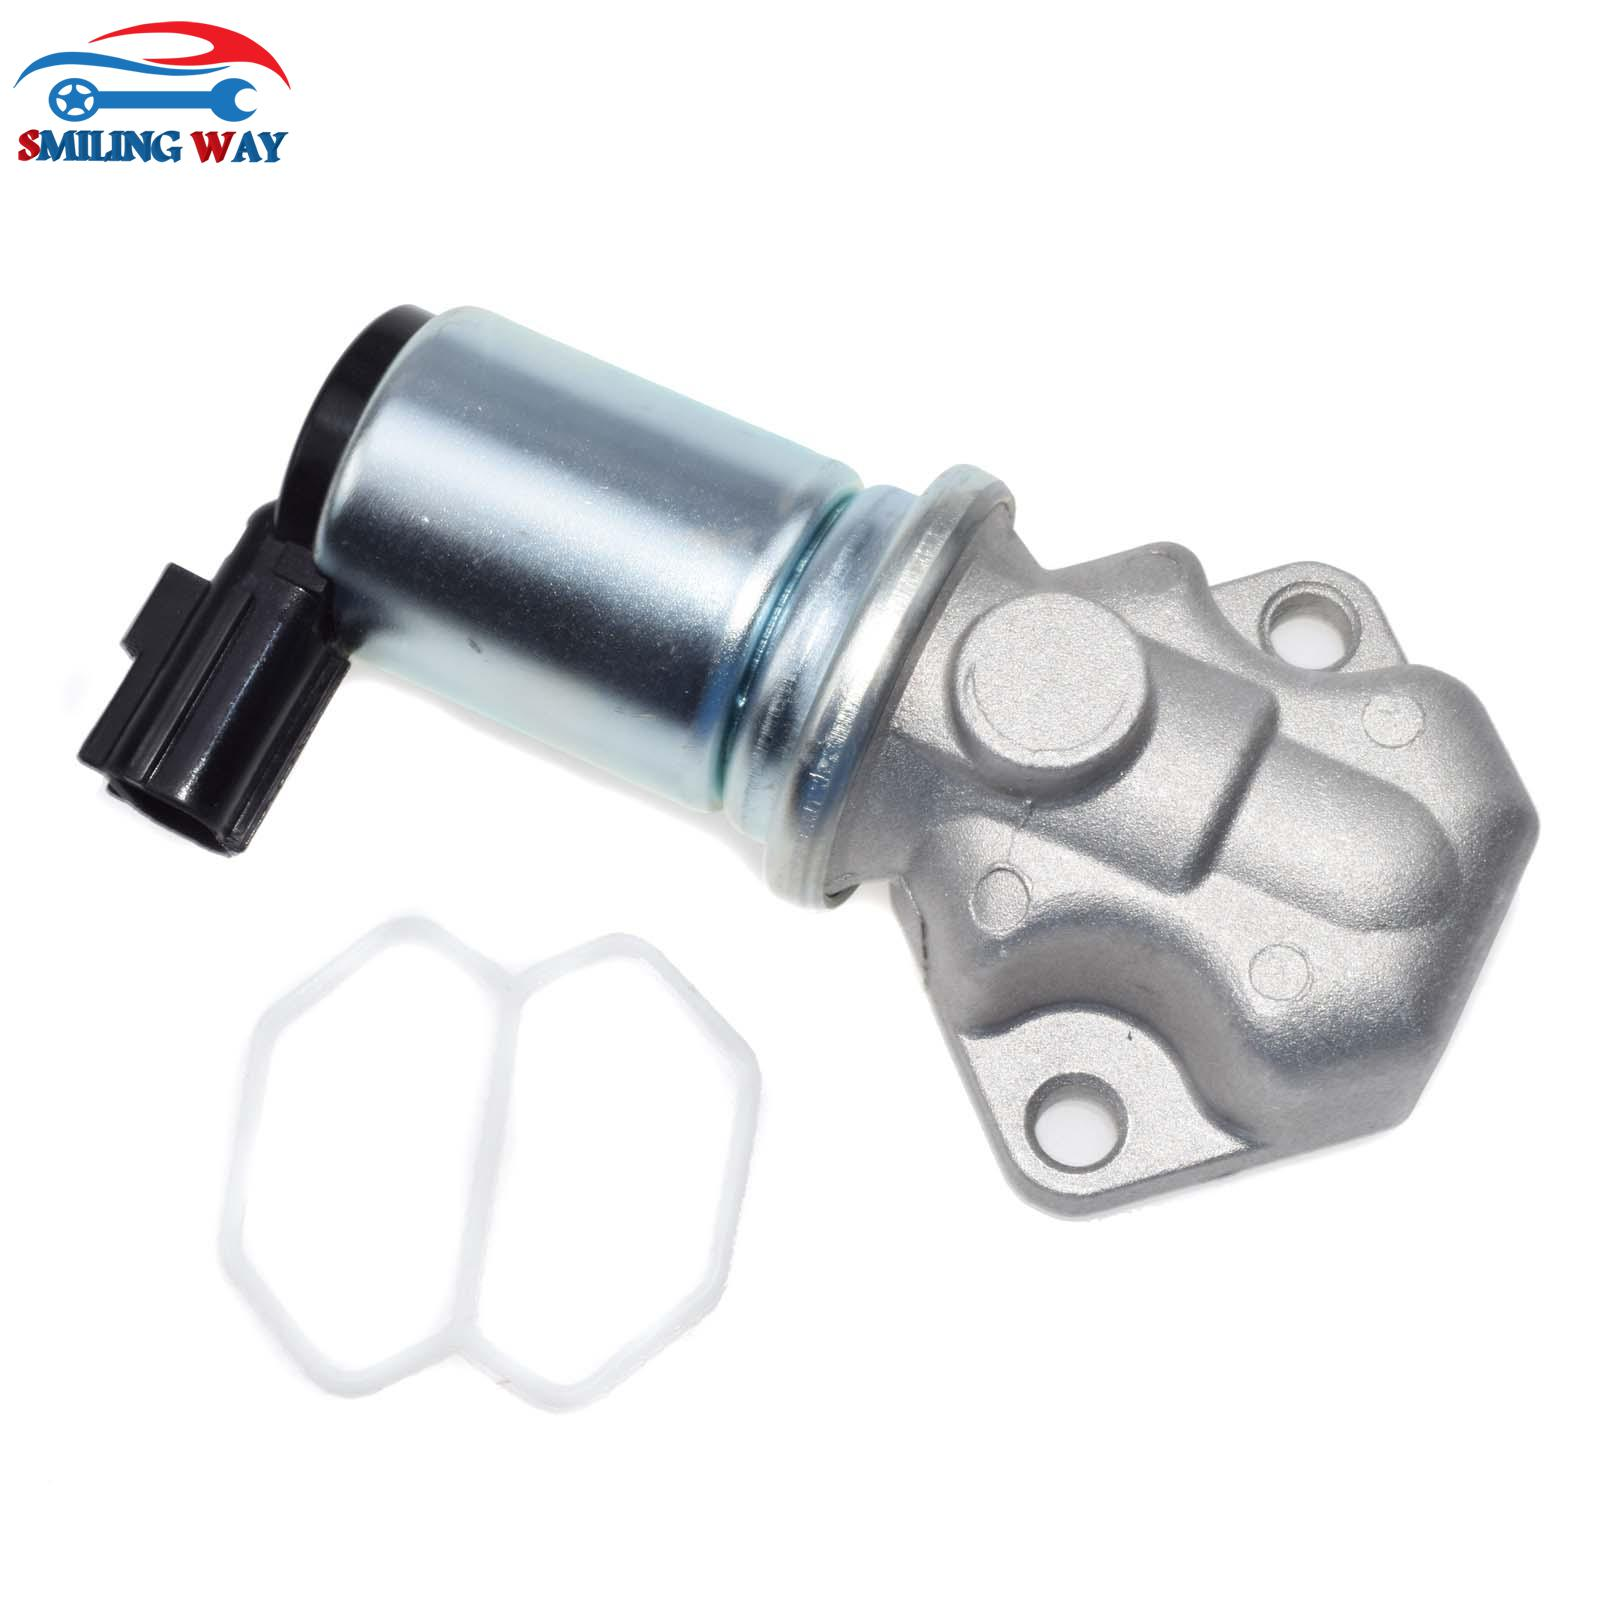 Useful Isance Idle Air Control Valve Iacv Iac Ac270t 1l8z9f715aa For Mazda Mpv Tribute Mercury Sable Ford Escape Taurus 2000 2001-2006 Automobiles & Motorcycles